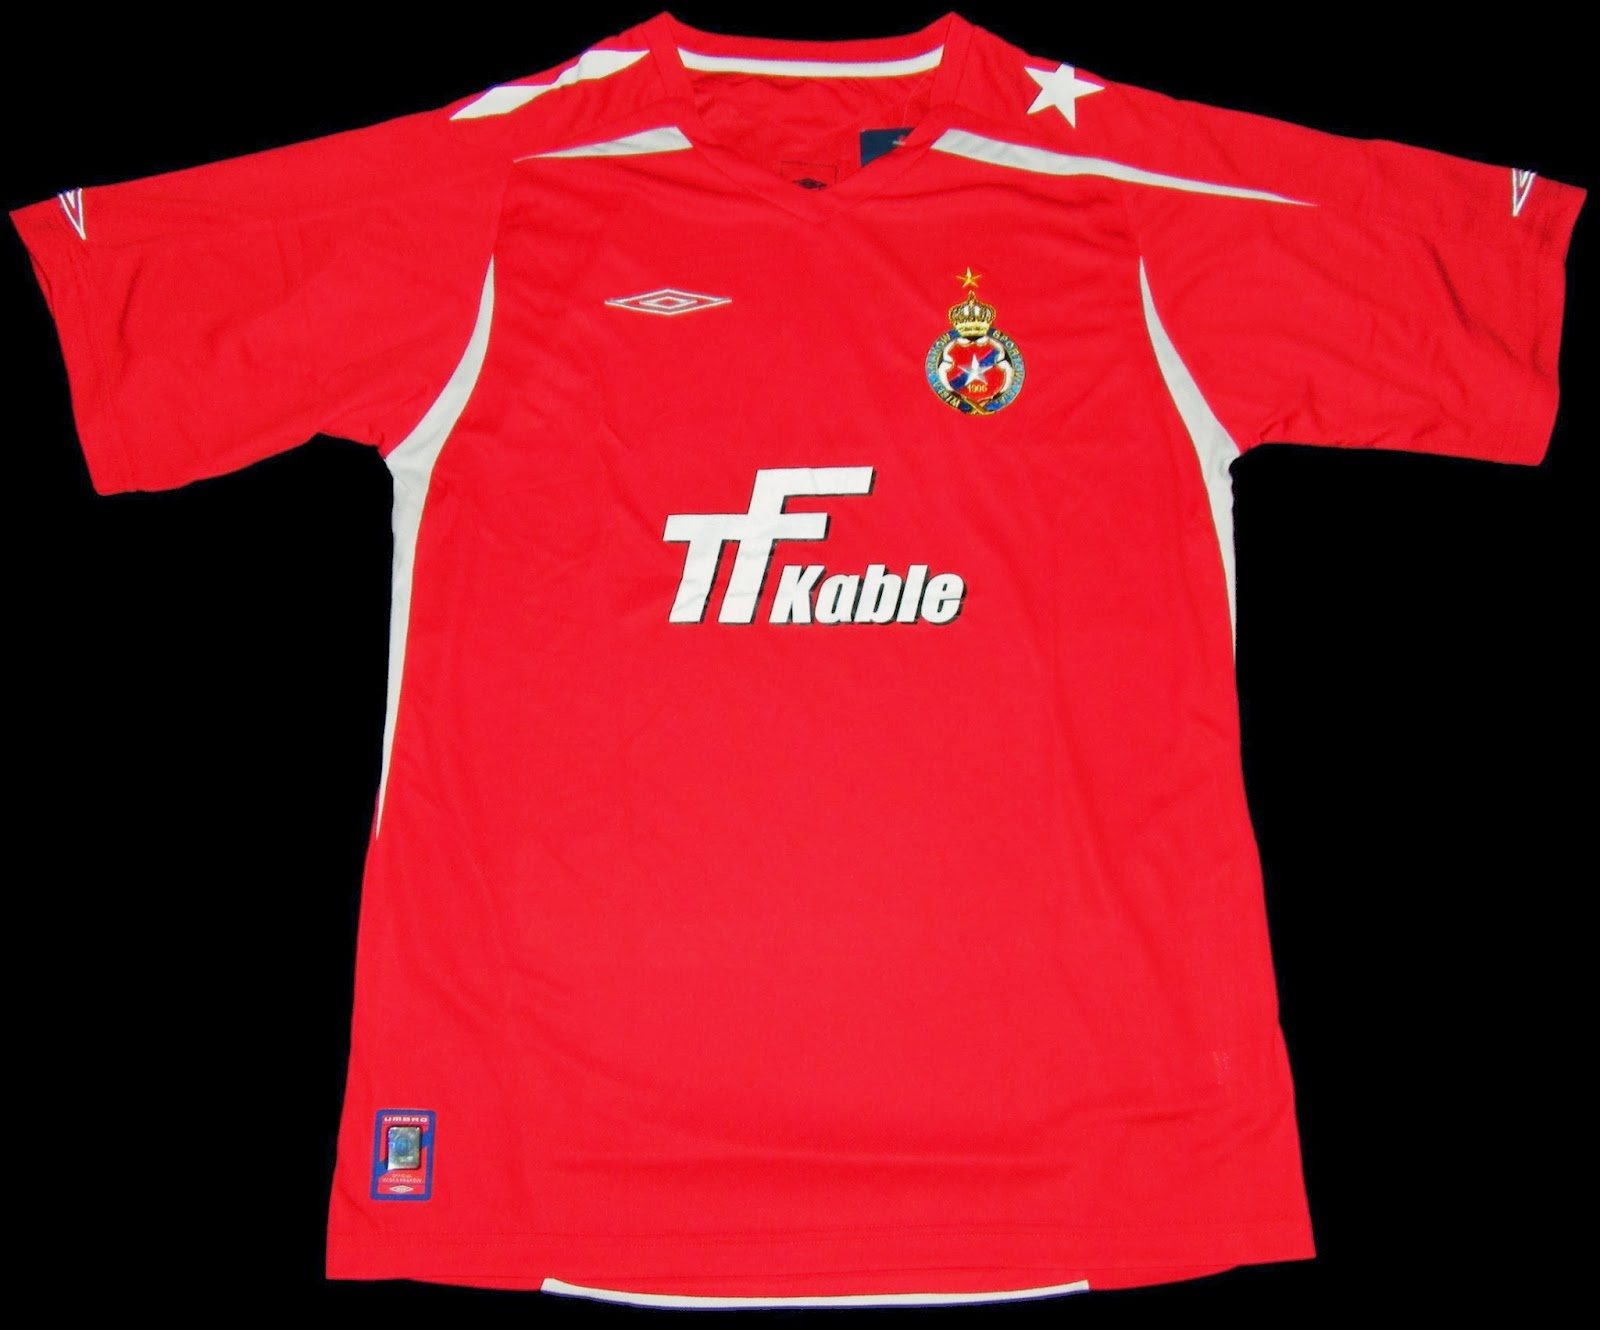 Football Shirts Collection in Japan: Wisla Krakow 08-09 HOME